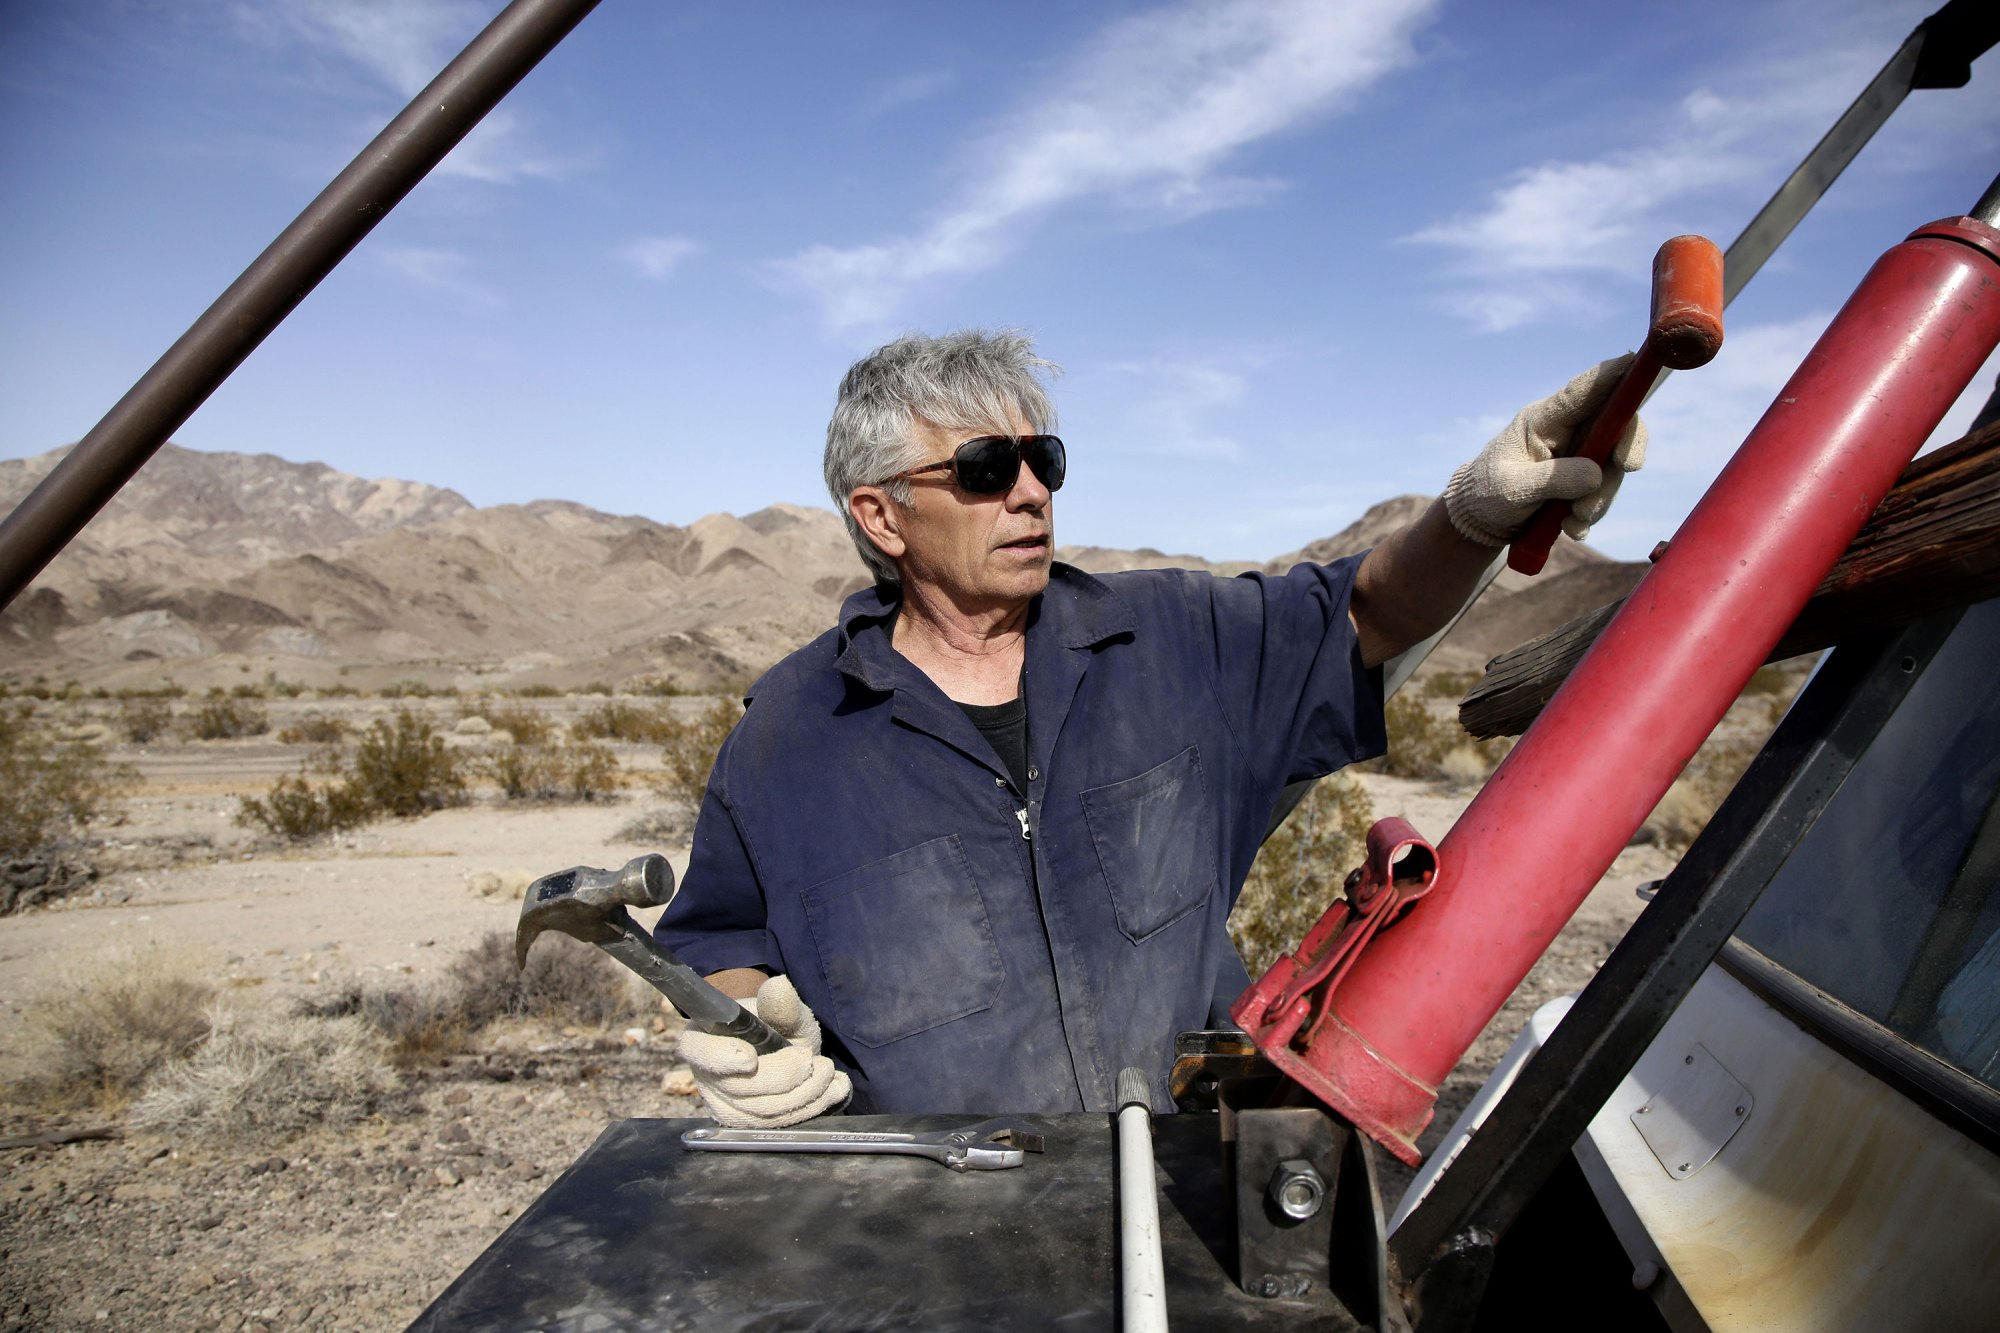 'Mad' Mike Hughes to launch home built, steam-powered rocket, Amboy, USA - 27 Nov 2017